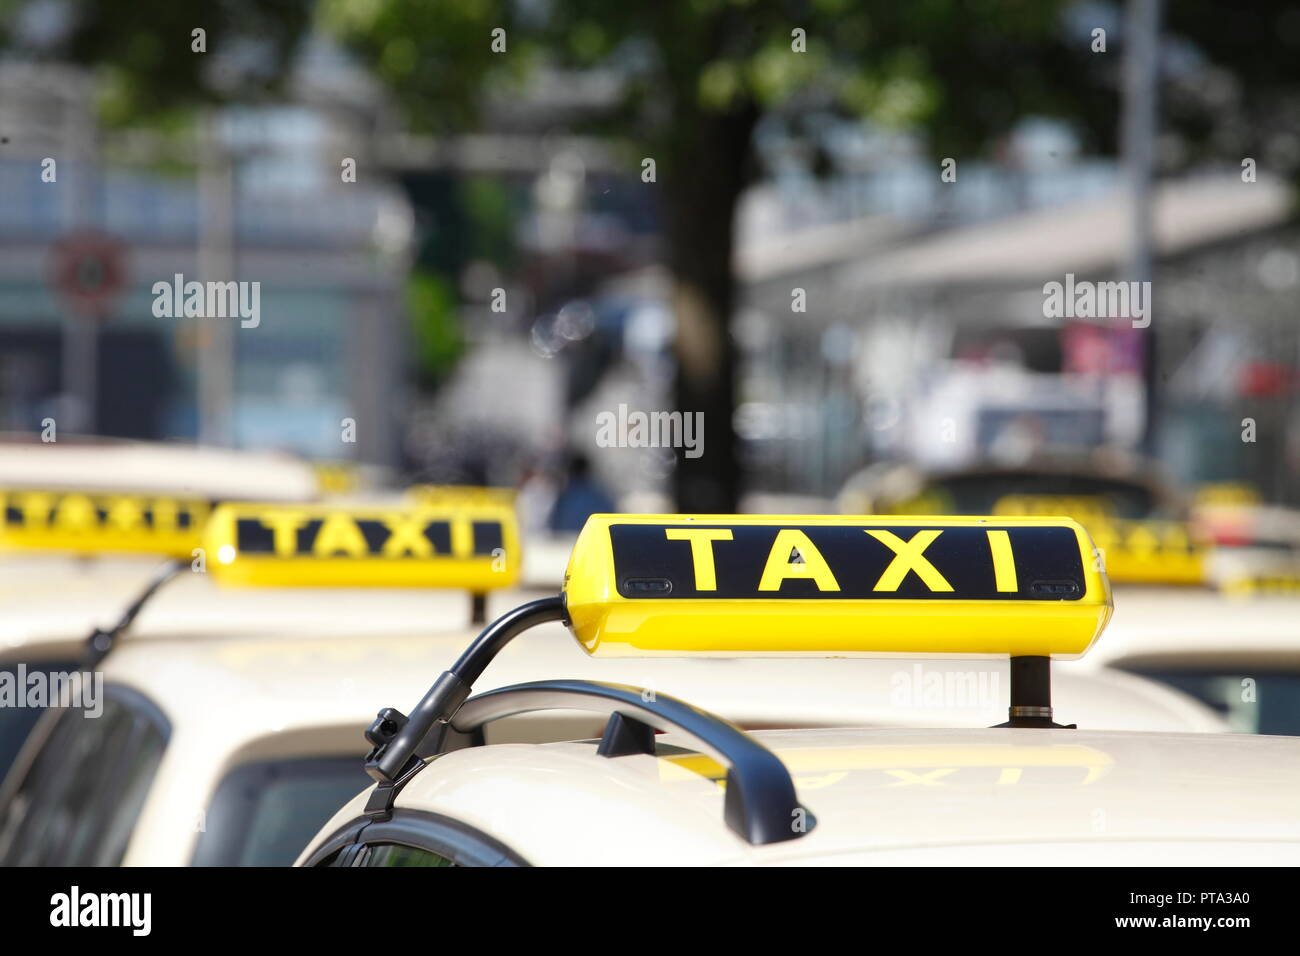 Taxi signs, Germany, Europe  I Taxisschilder, Deutschland I - Stock Image